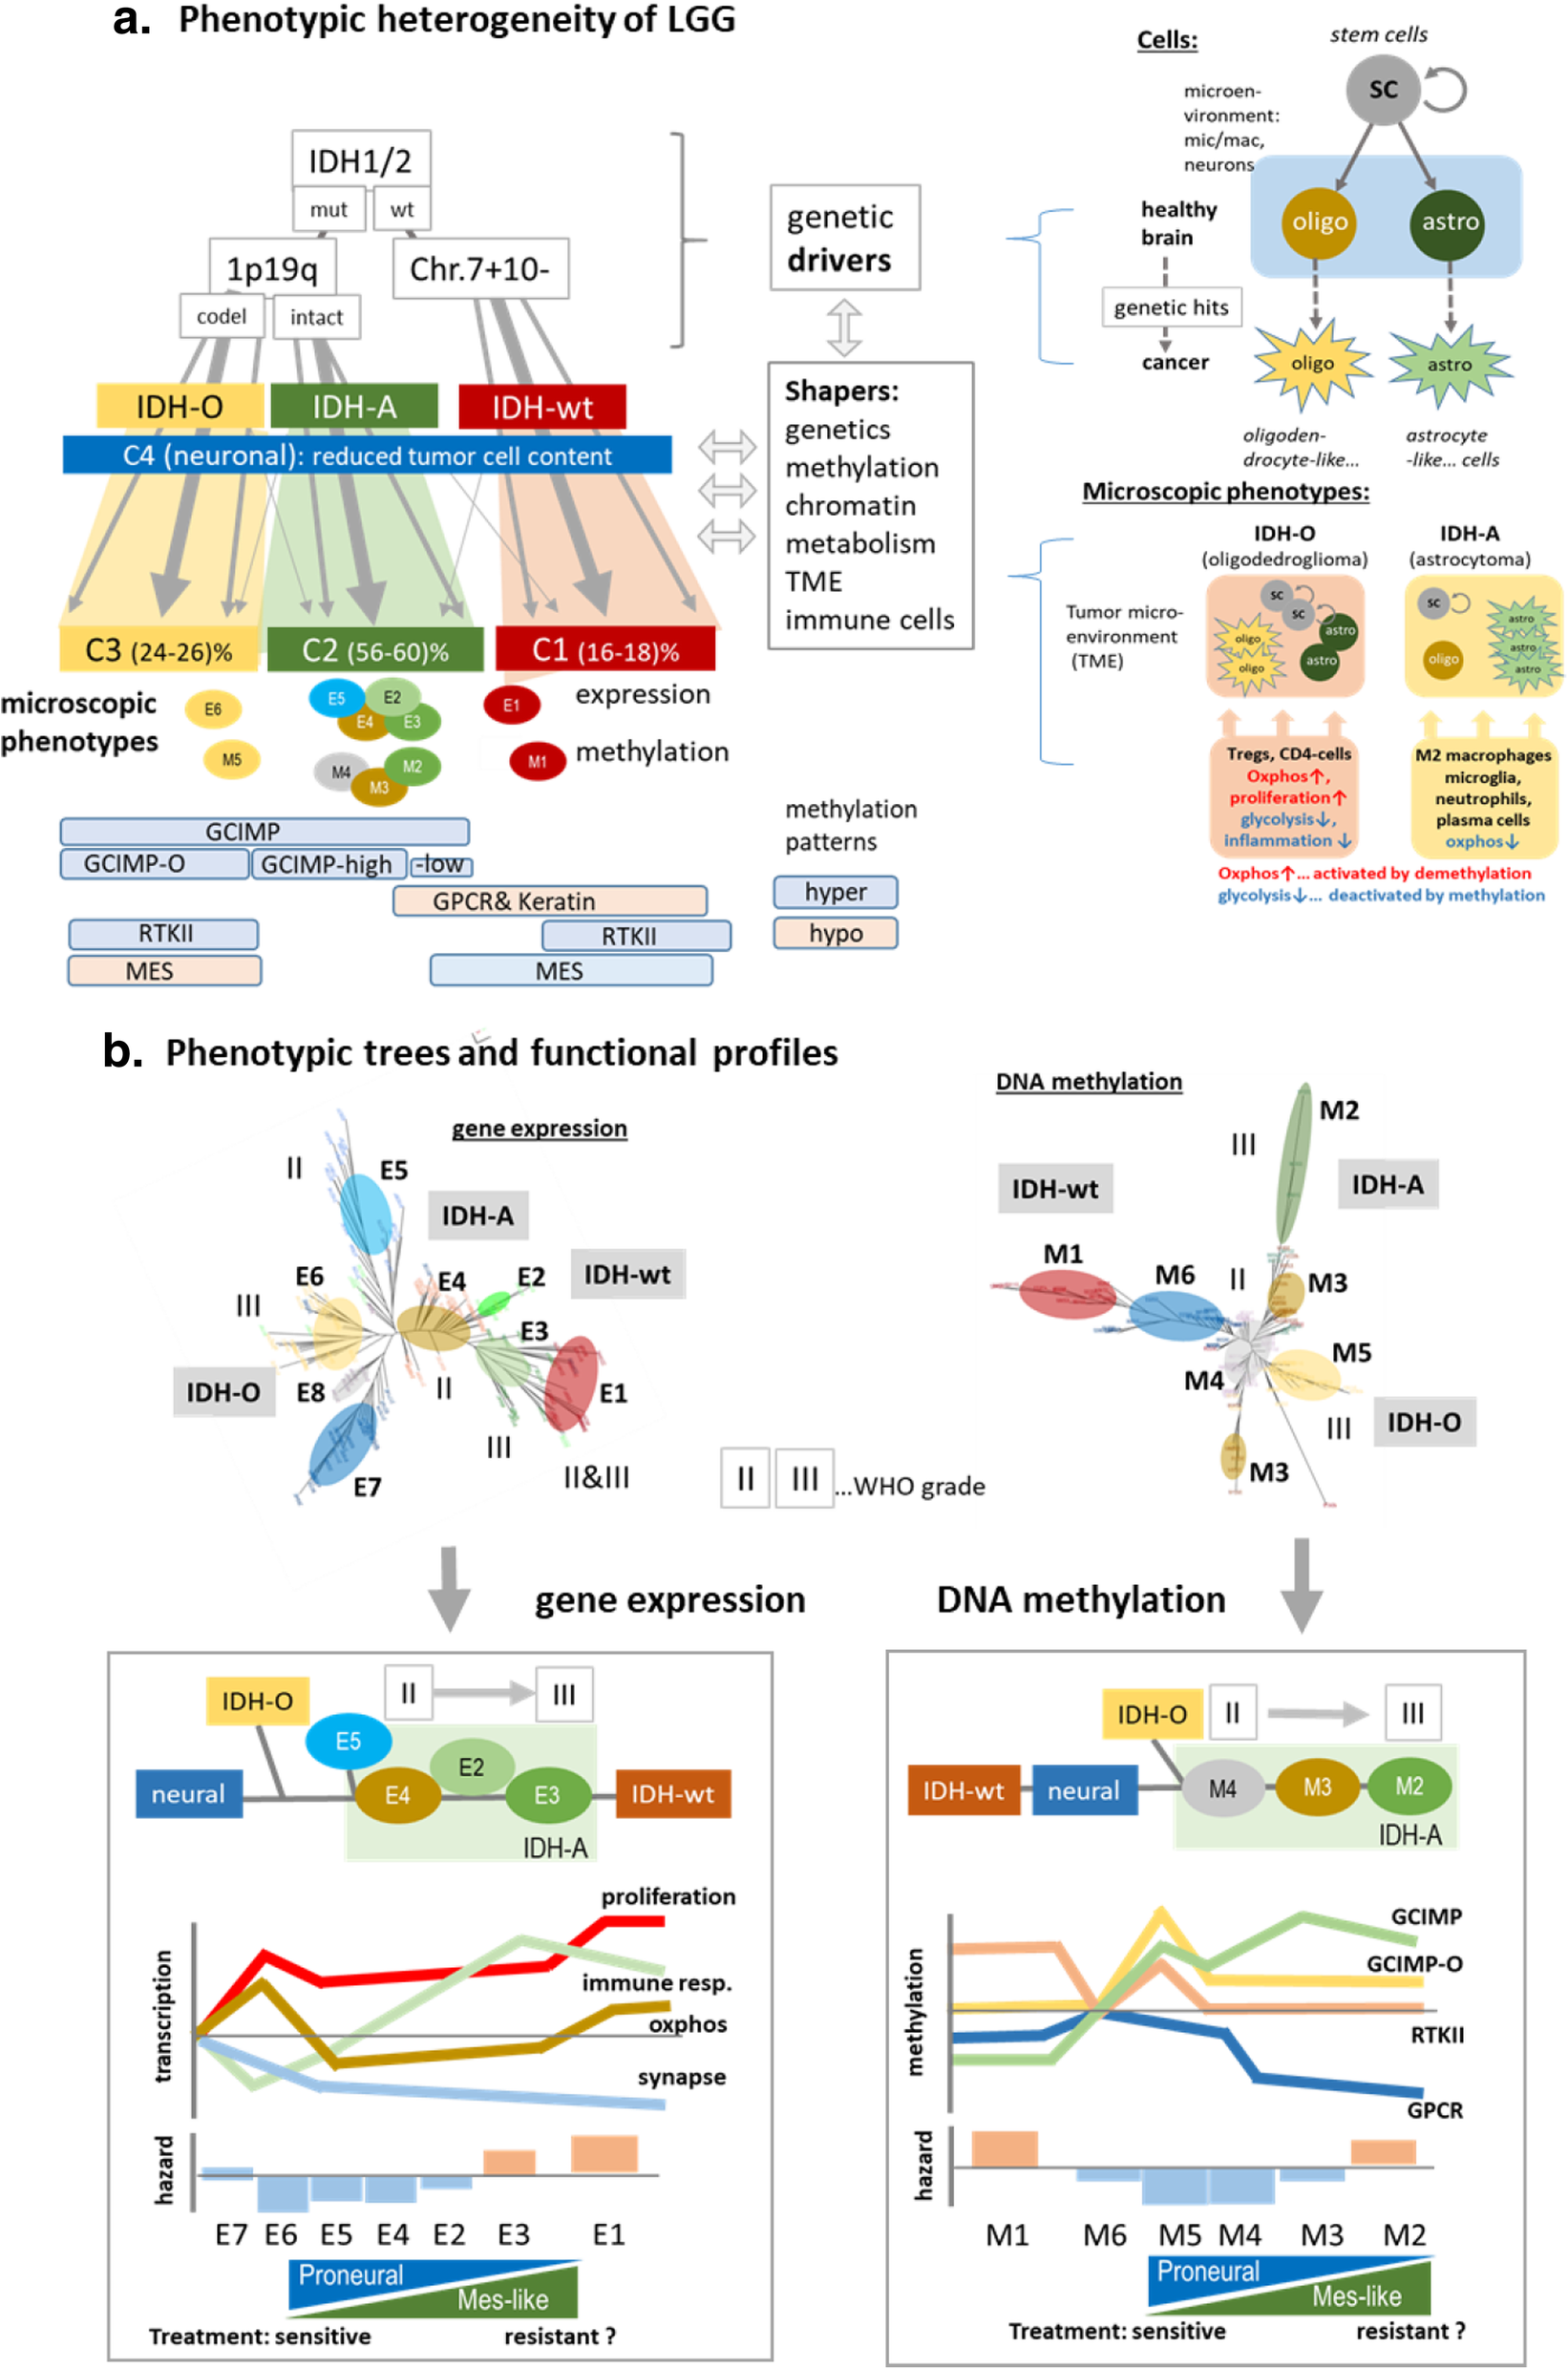 DNA methylation, transcriptome and genetic copy number